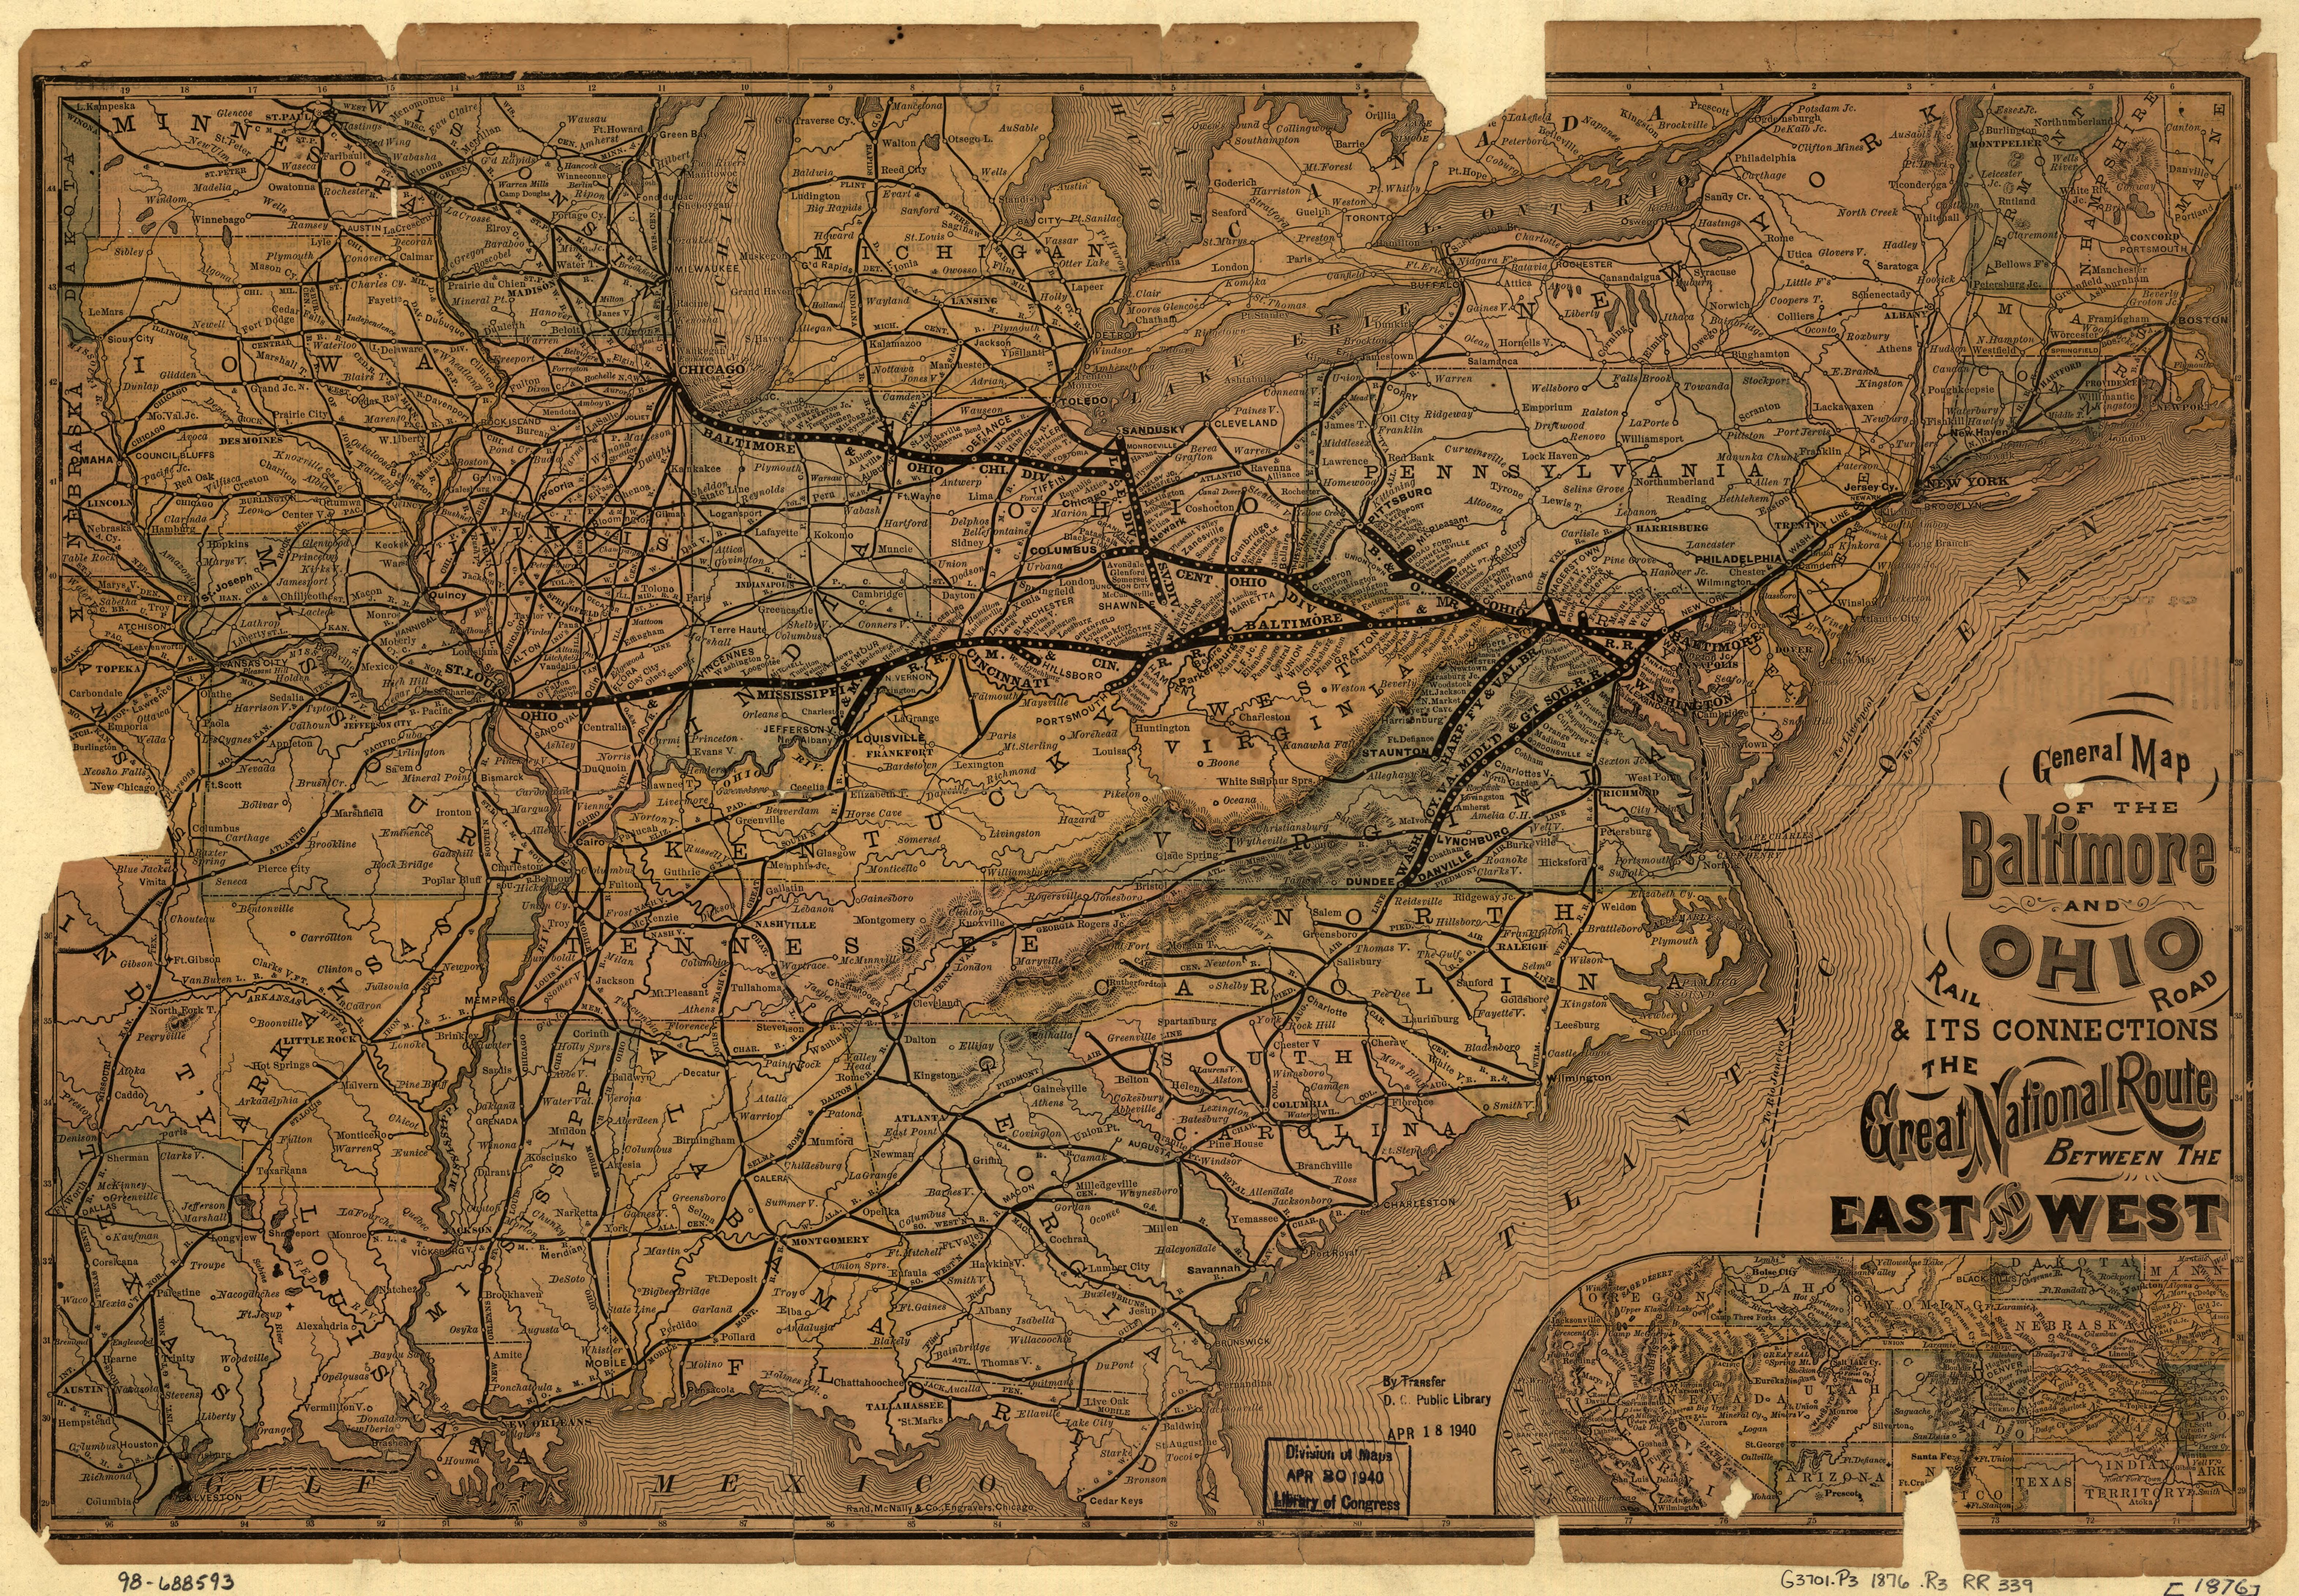 Baltimore and ohio railroad 5k retina ultra hd wallpaper and misc map wallpaper gumiabroncs Images